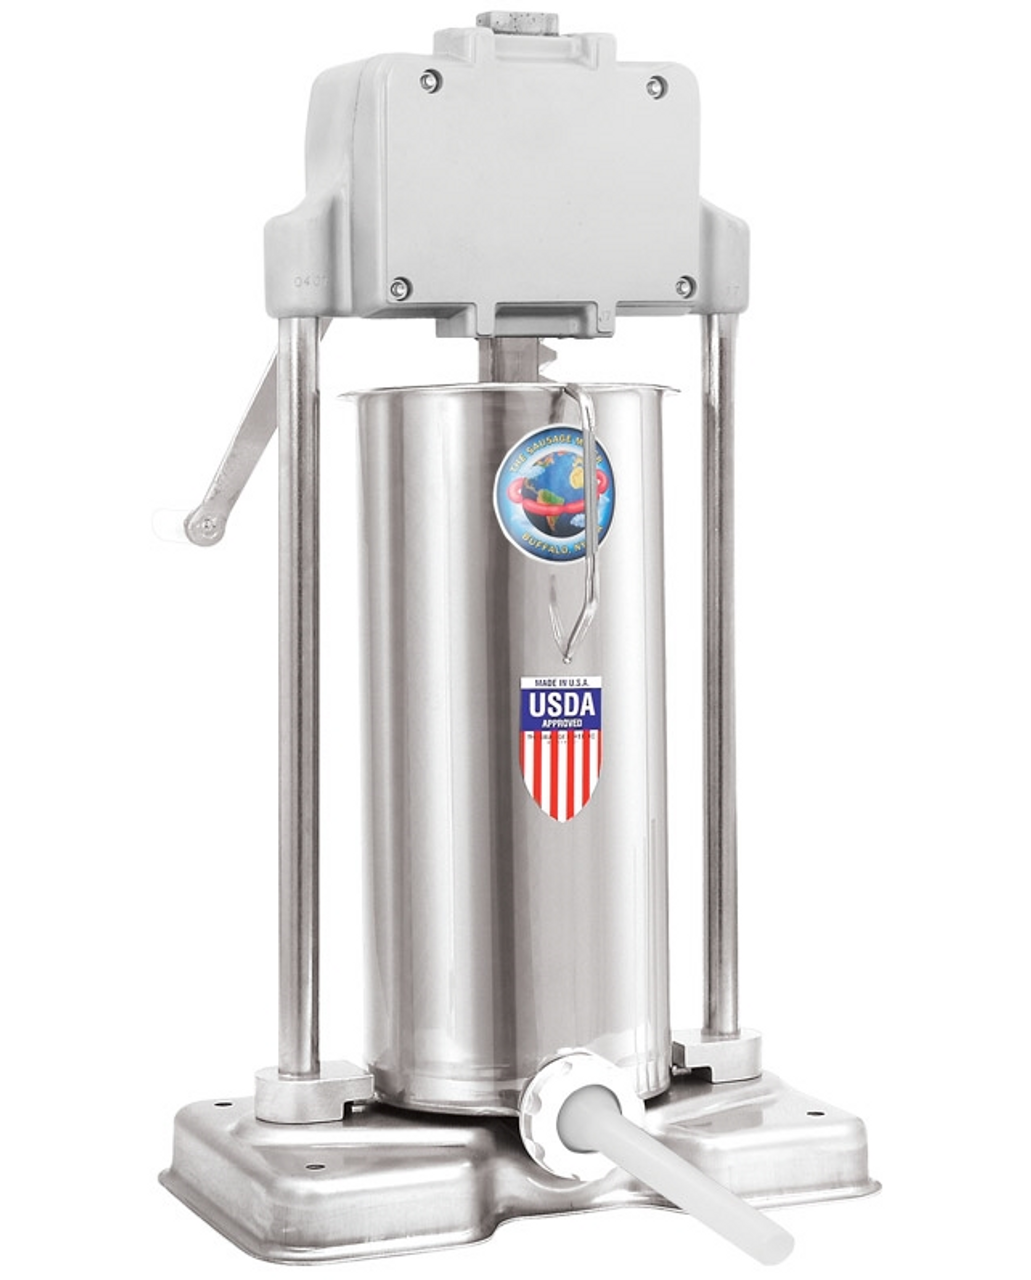 25lb. Deluxe Manuel Sausage Stuffer - Made in the USA - 52501